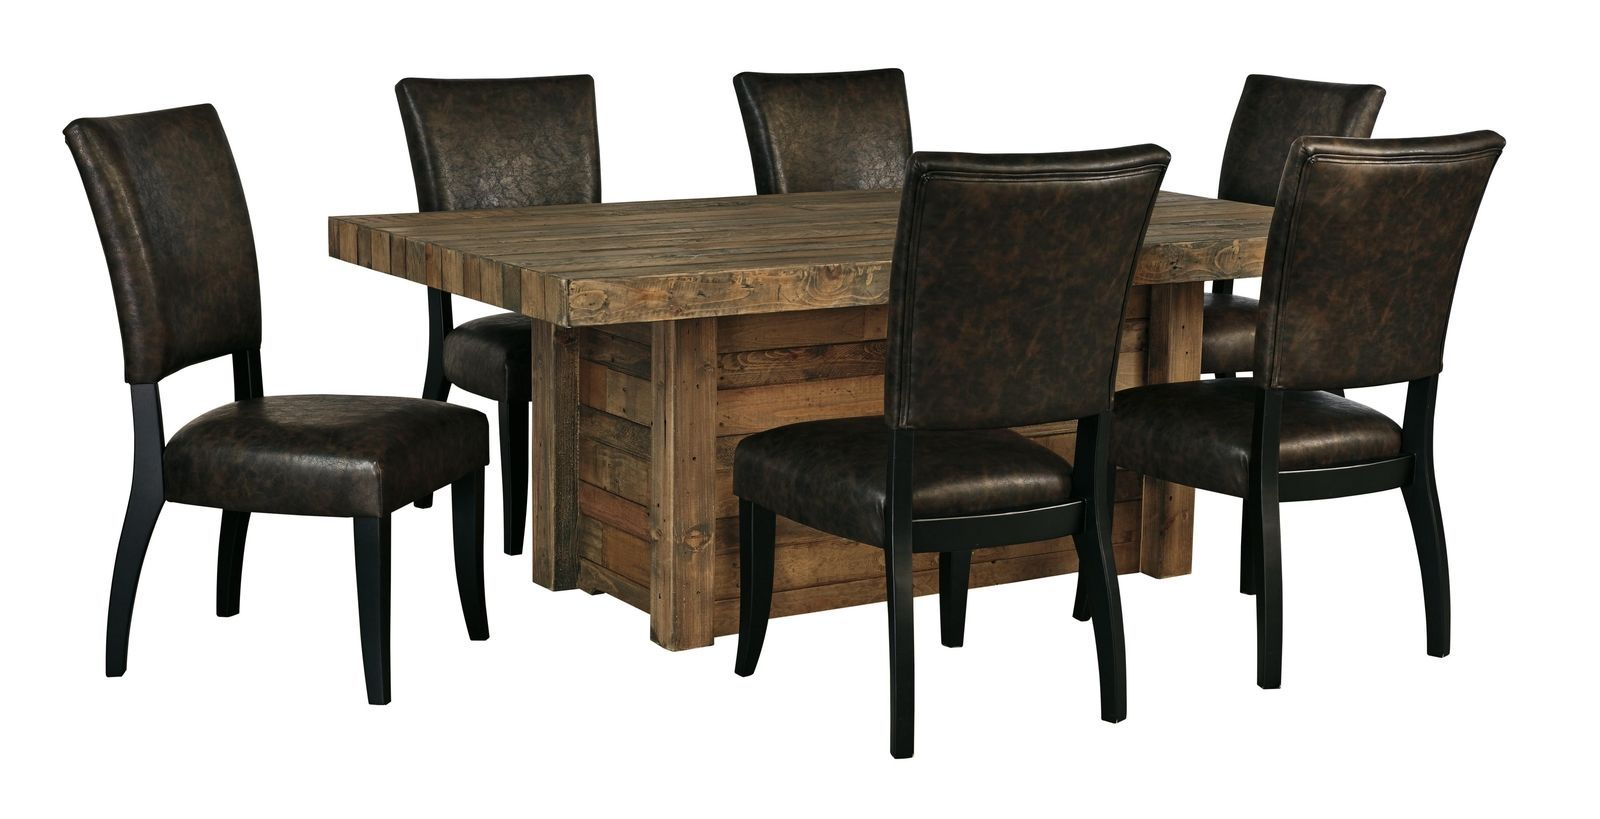 Sommerford 7 piece rectangular dining room table set for 7 piece dining room set with bench